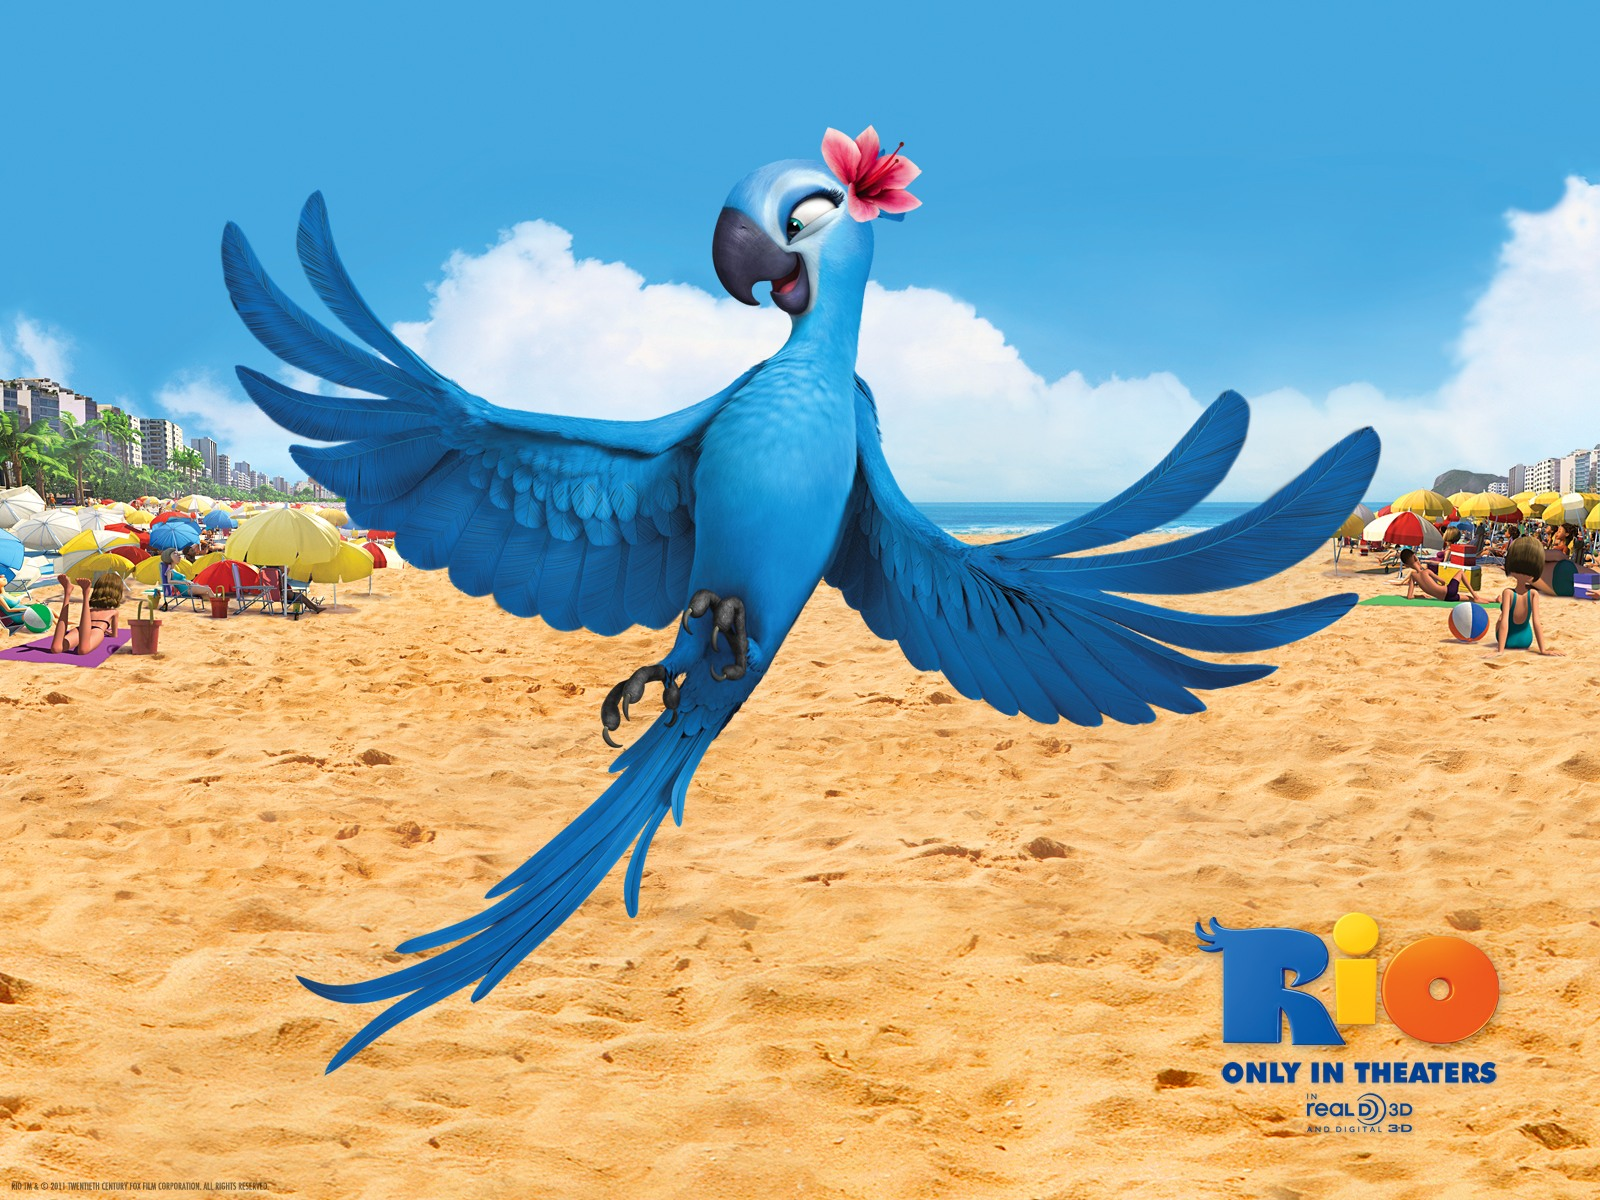 rio (the movie) images jewel from rio hd wallpaper and background